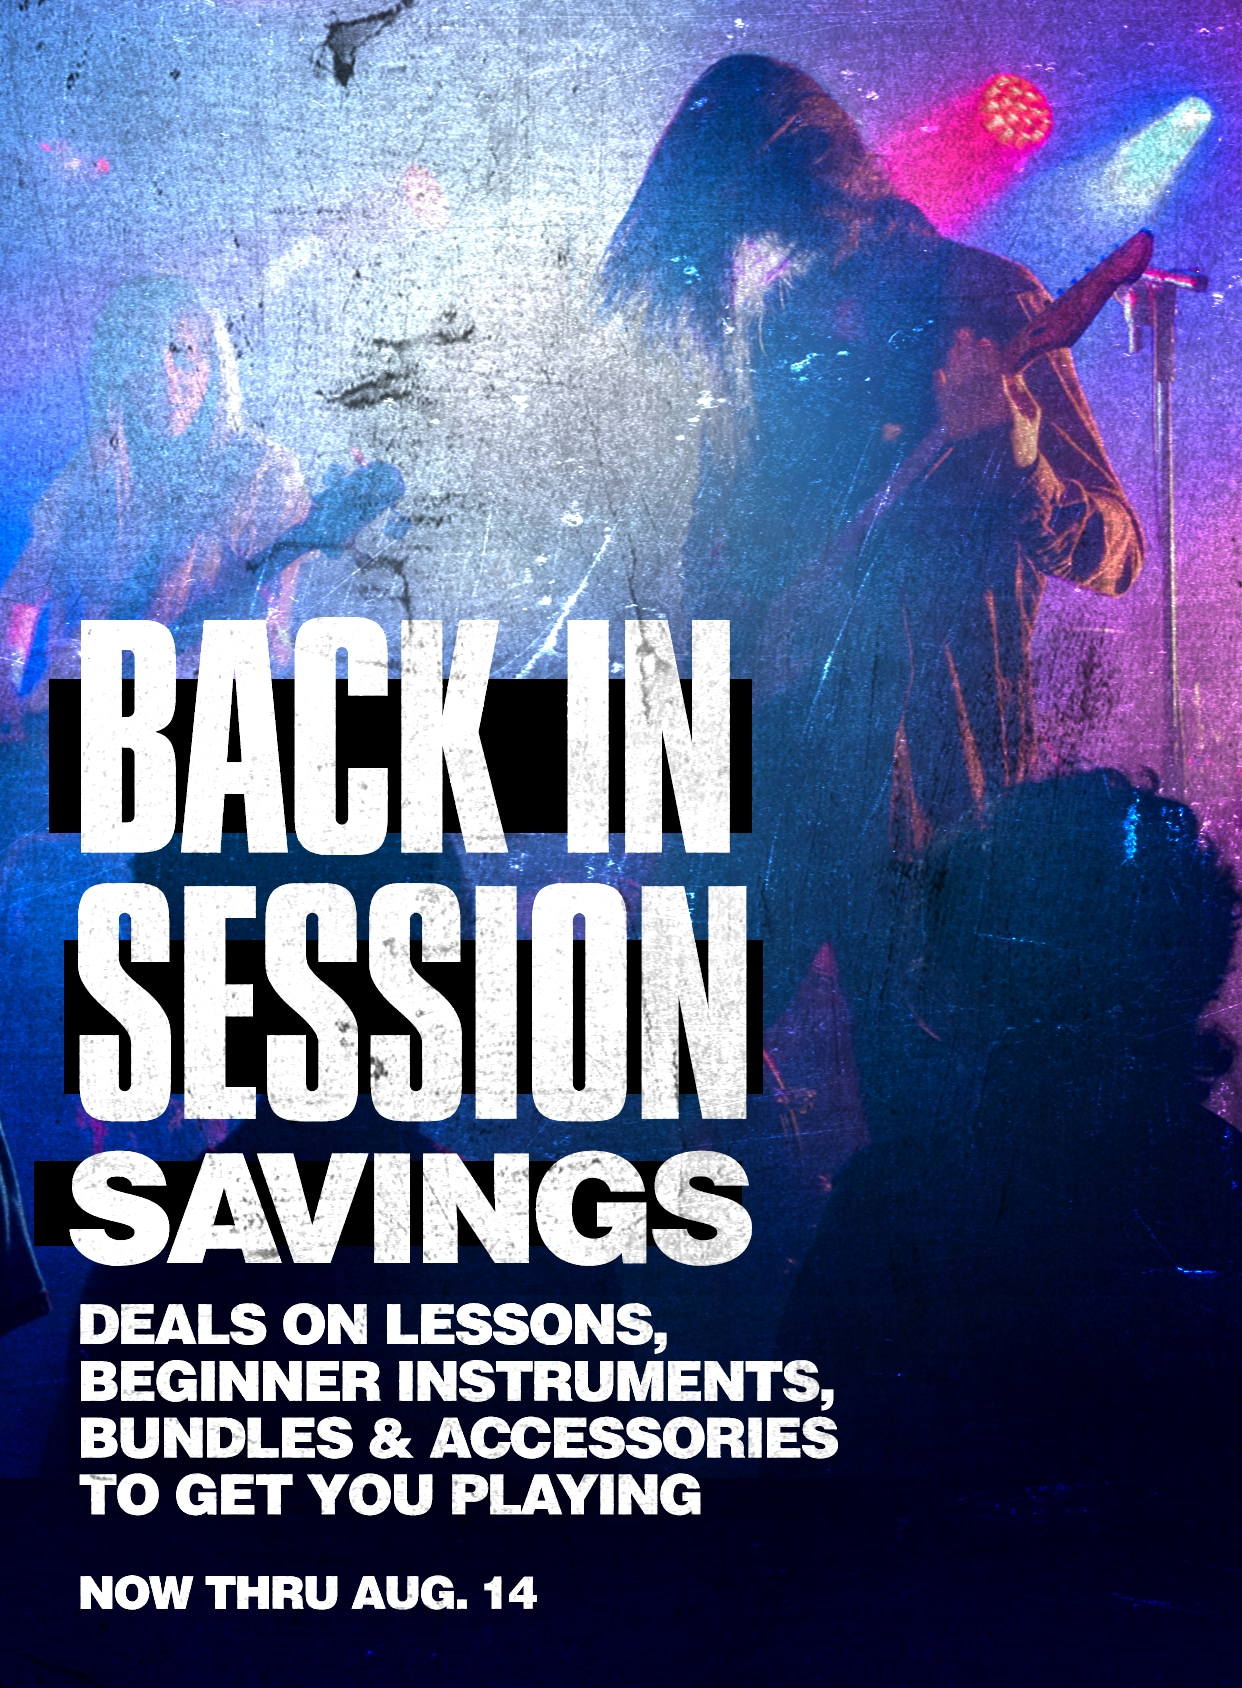 BBack in session savings. Deals on lessons, beginner instructions, bundles and accessories to get you playing. Now thru August 14.